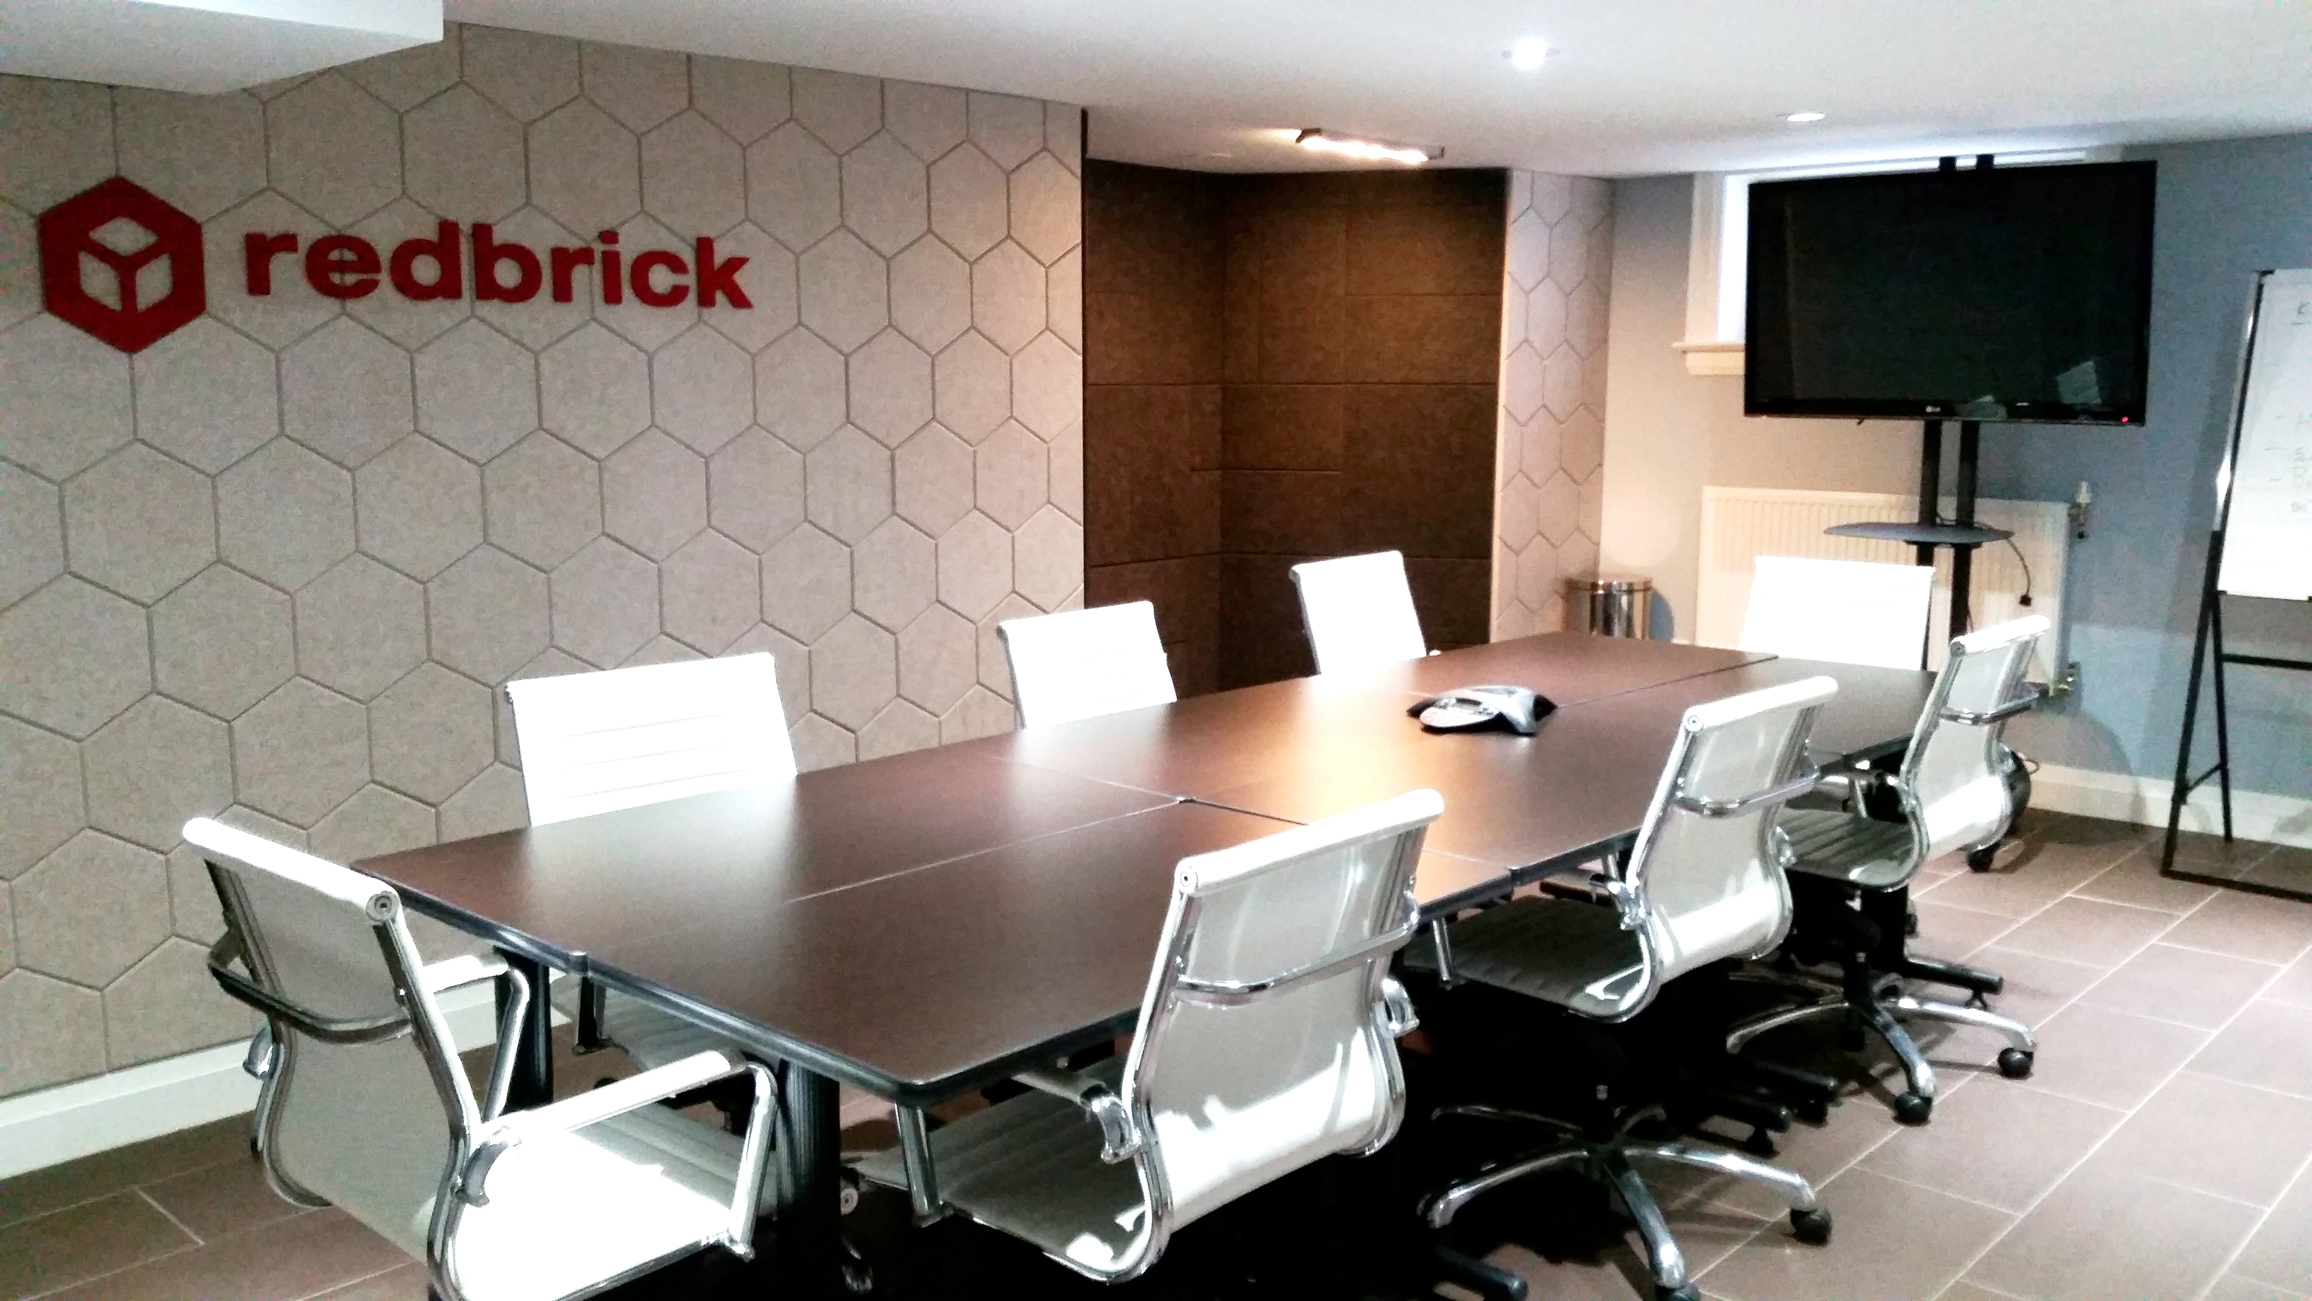 Redbrick training room